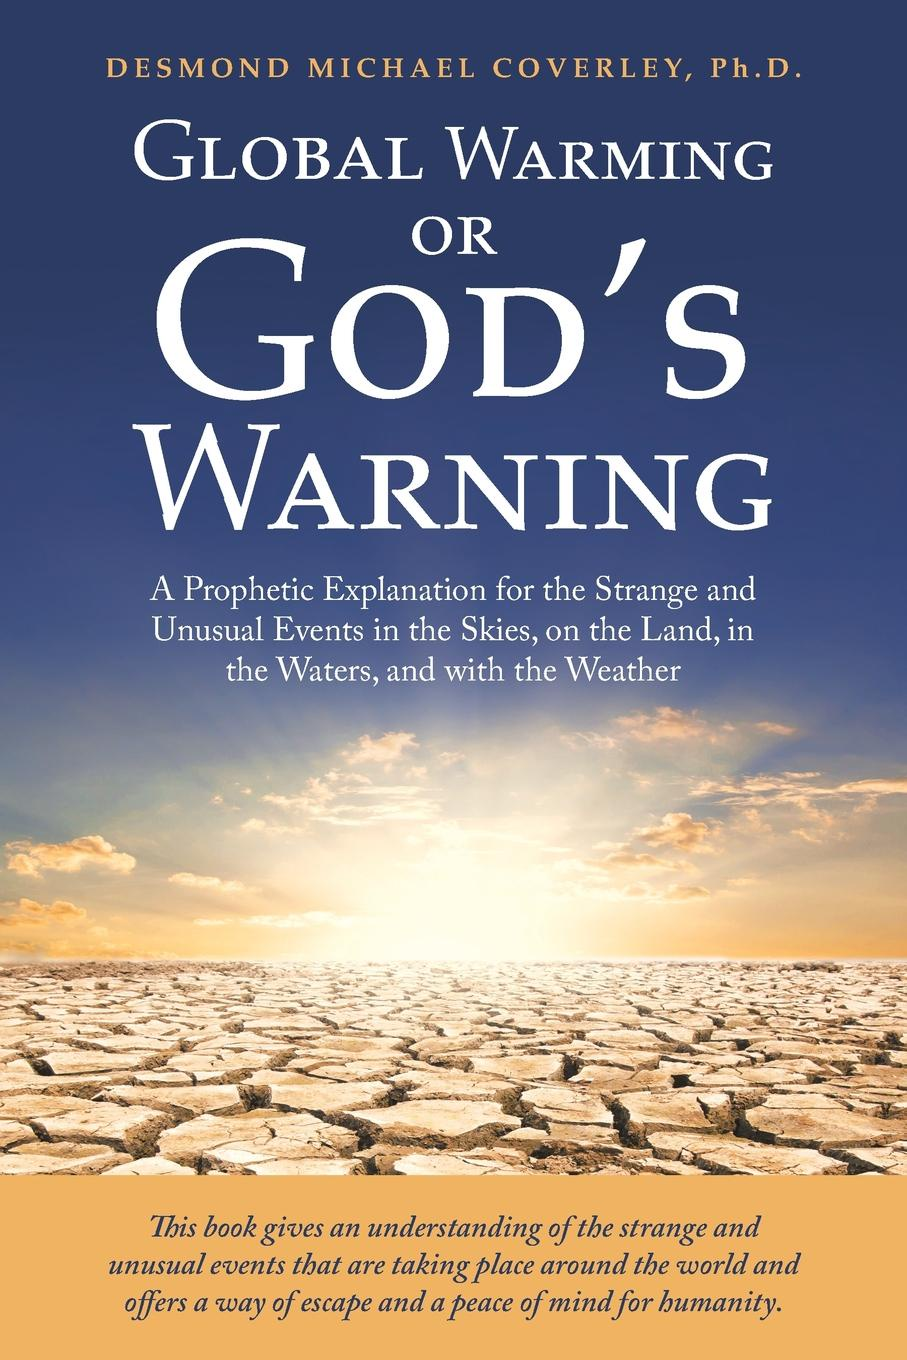 Desmond Michael Coverley Ph.D. Global Warming or God.S Warning. A Prophetic Explanation for the Strange and Unusual Events in the Skies, on the Land, in the Waters, and with the Weather baring gould sabine freaks of fanaticism and other strange events